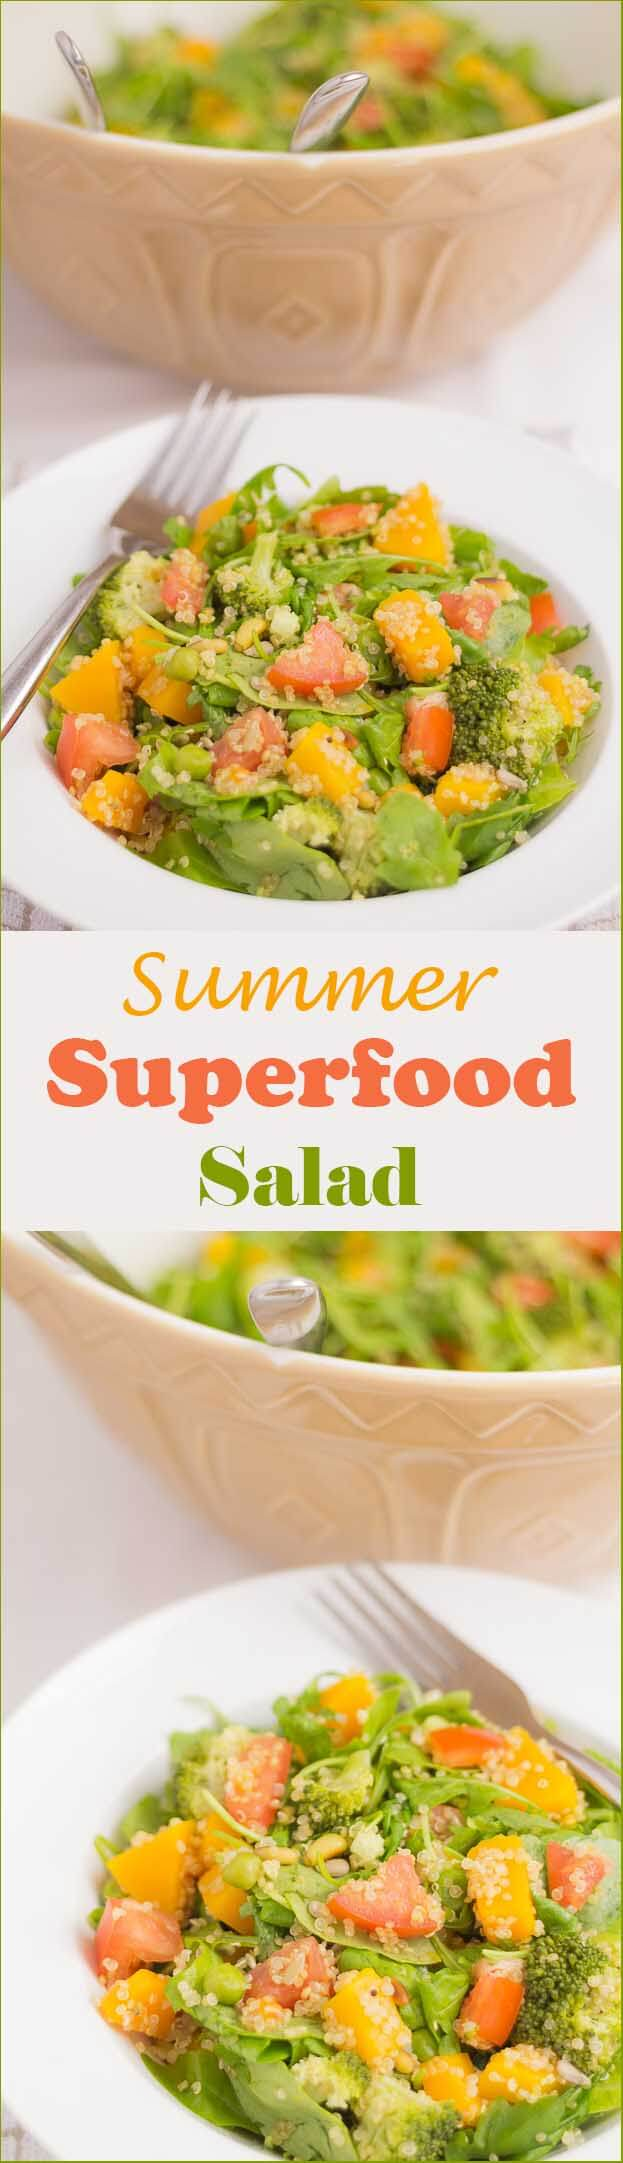 You'll love this summer superfood salad. How better to make sure you combine as many superfoods as possible into your daily diet, than by having them in an amazingly tasty and colourful summer superfood salad like this?